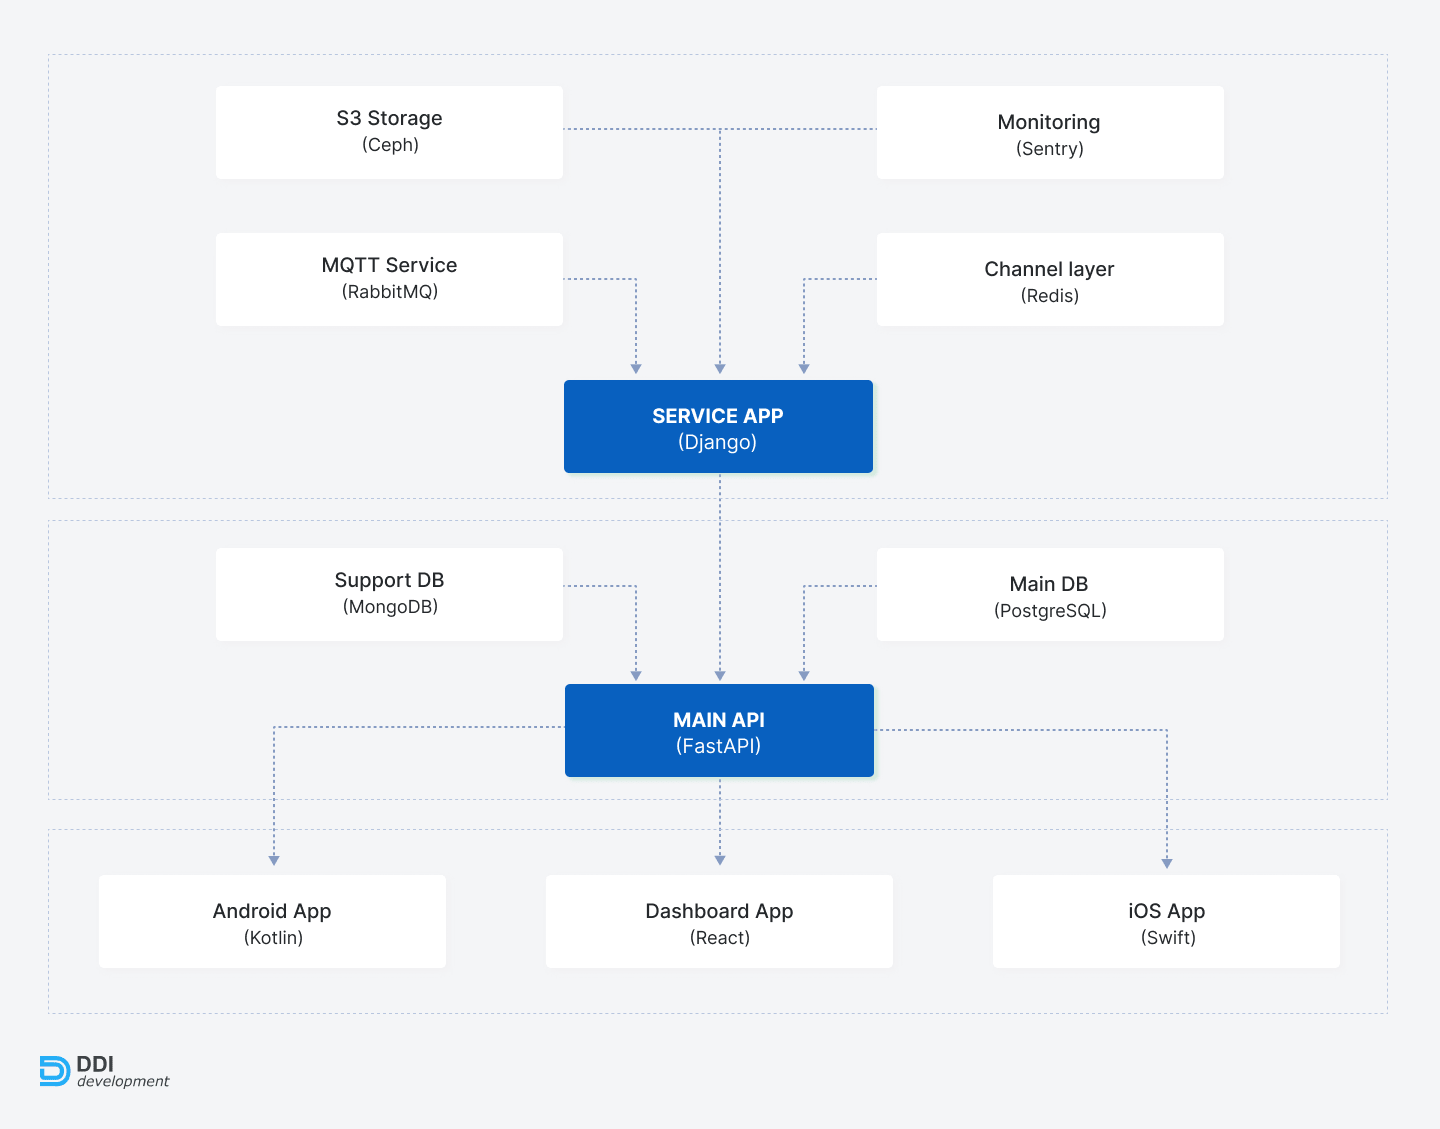 Project structure of the mobile banking app